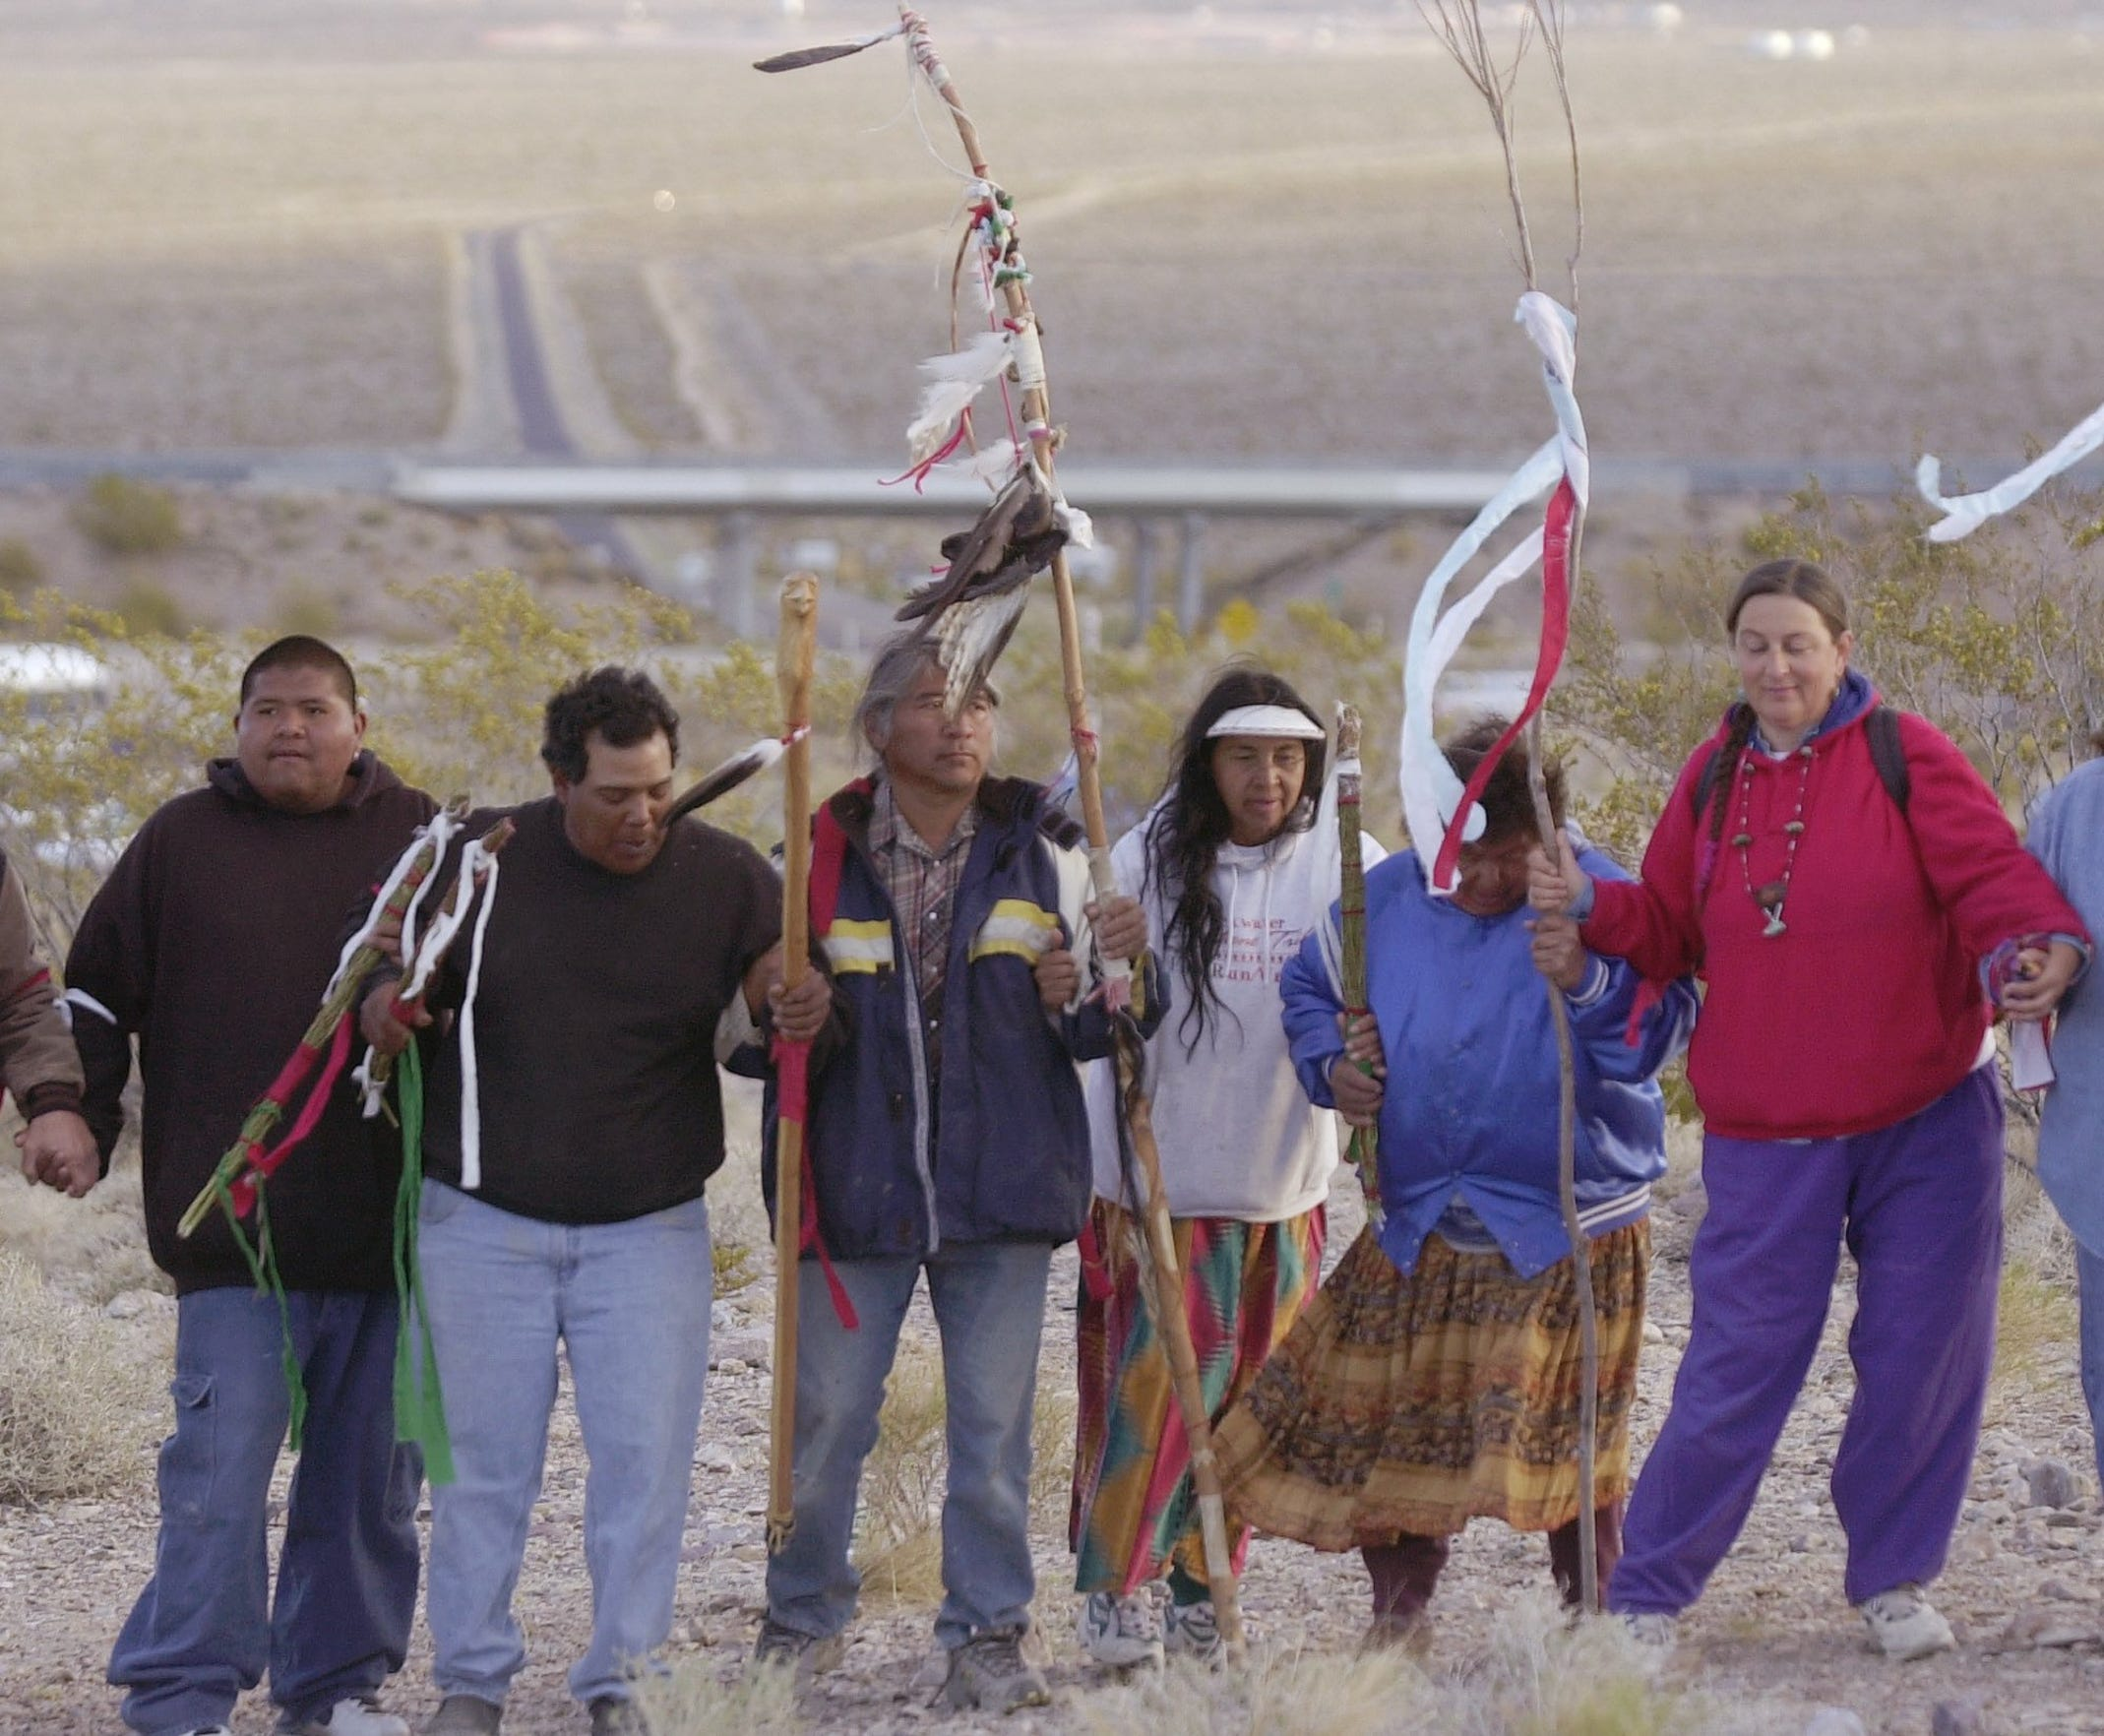 Johnnie Bobb, third from left, takes part in a ceremony near the gates to the Nevada Test Site, in background, and the proposed Yucca Mountain  nuclear waste dump on May 11, 2002. Seventeen years later, Bobb and other Native Americans continue to protest the storage of nuclear waste at the site.